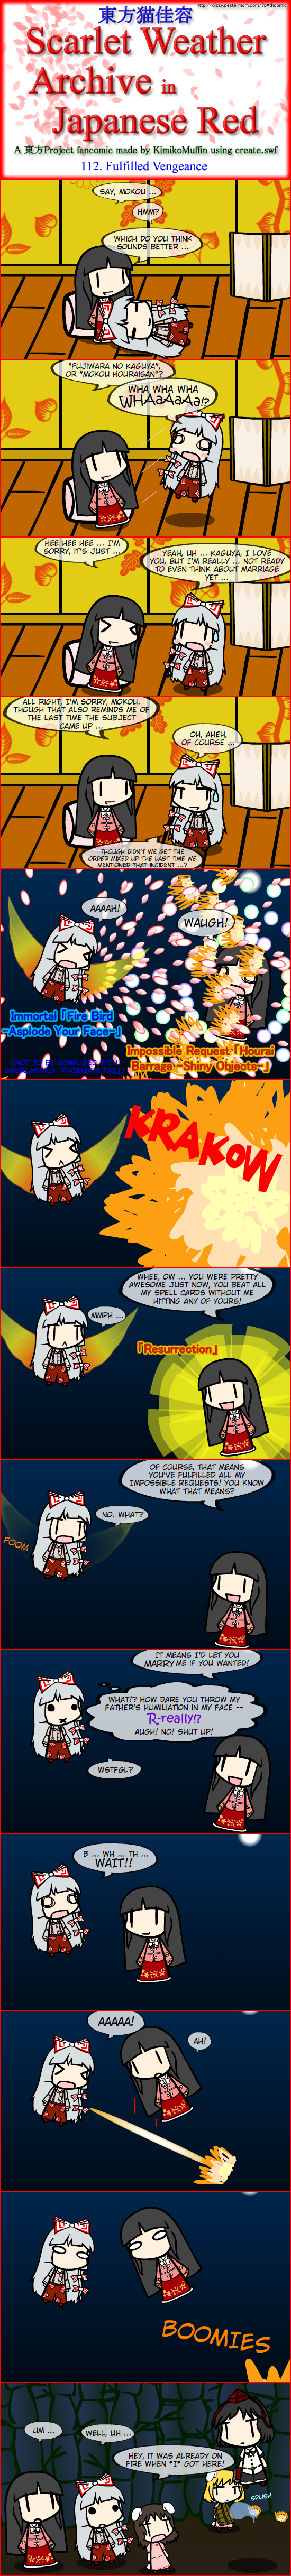 Touhou Nekokayou: Scarlet Weather Archive in Japanese Red #112